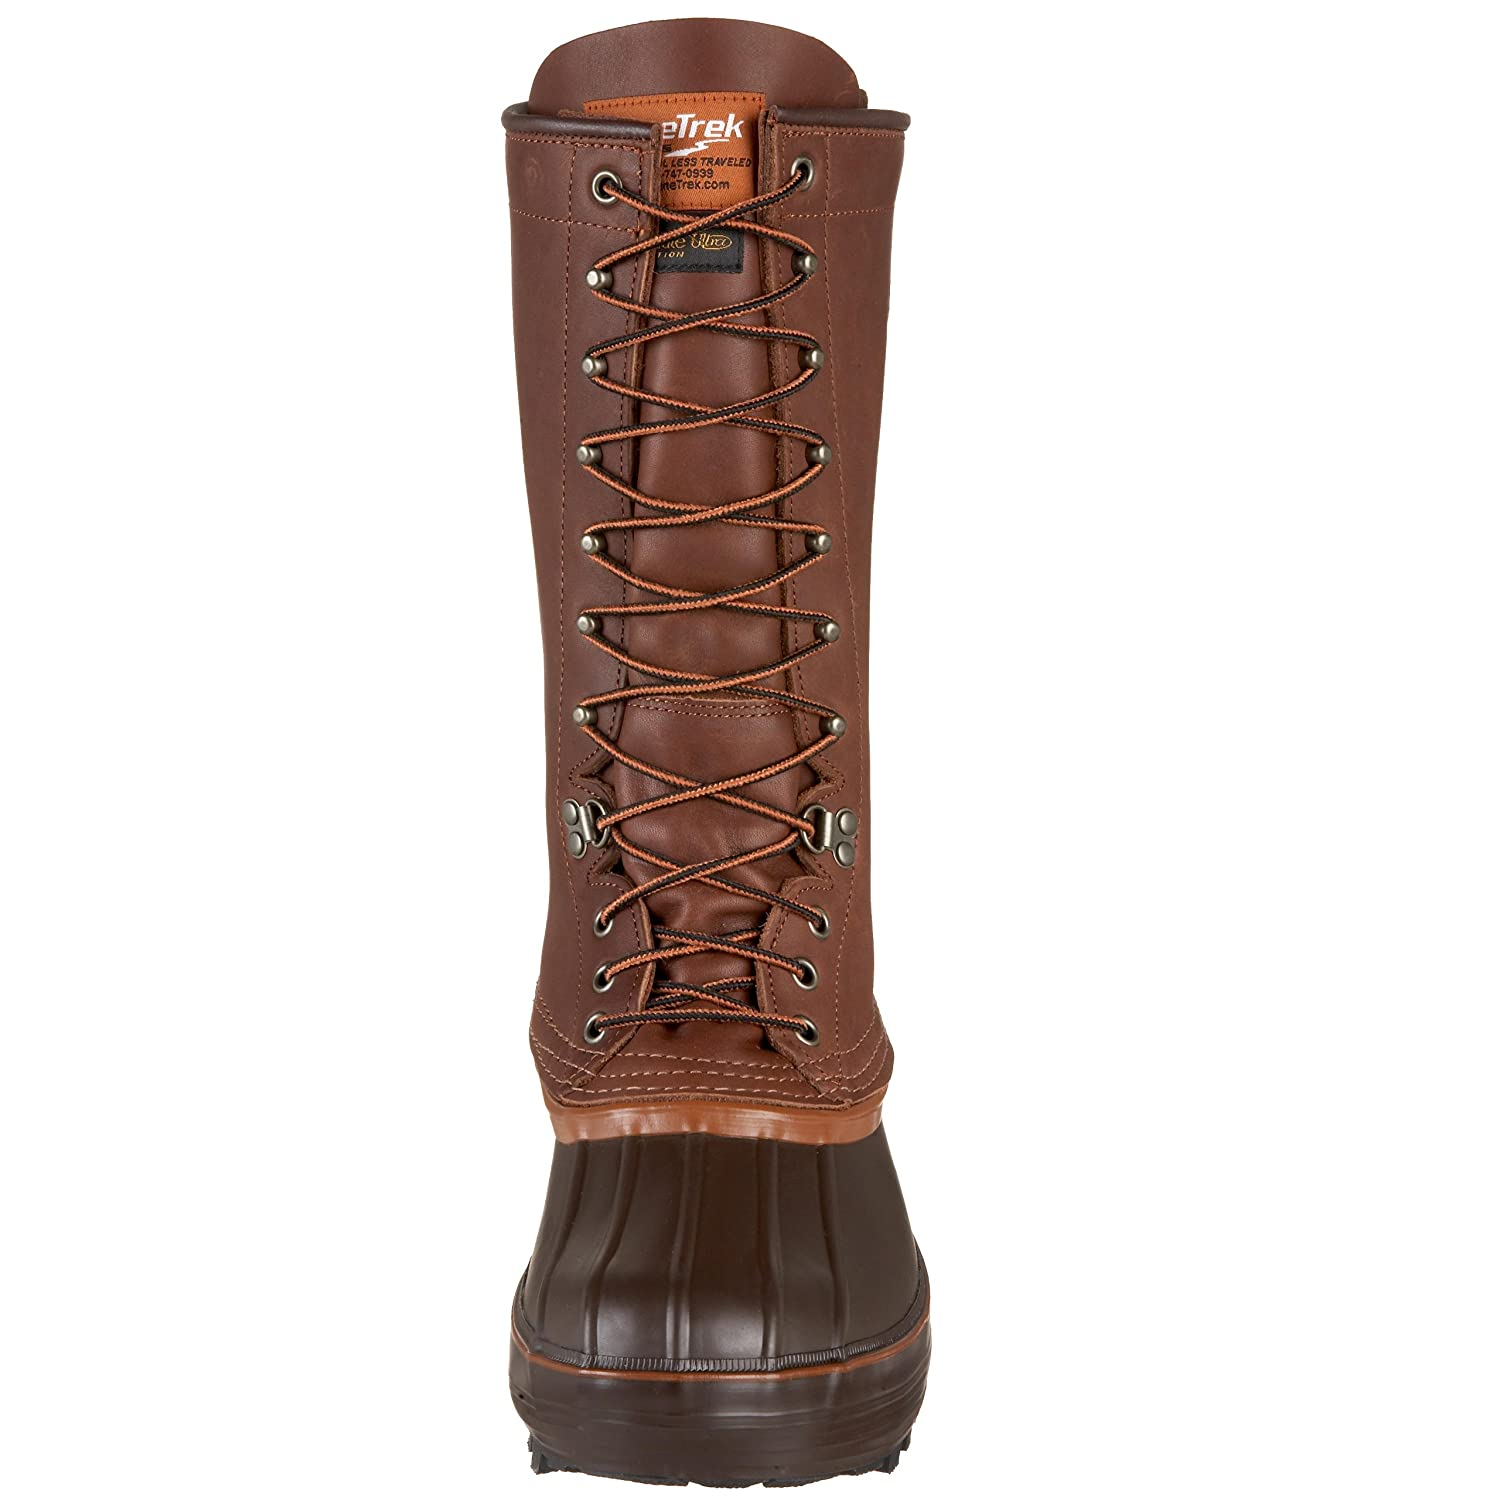 Kenetrek Unisex 13 Inch Grizzly Insulated Boot B001KQ4HVQ 6 M US|Brown